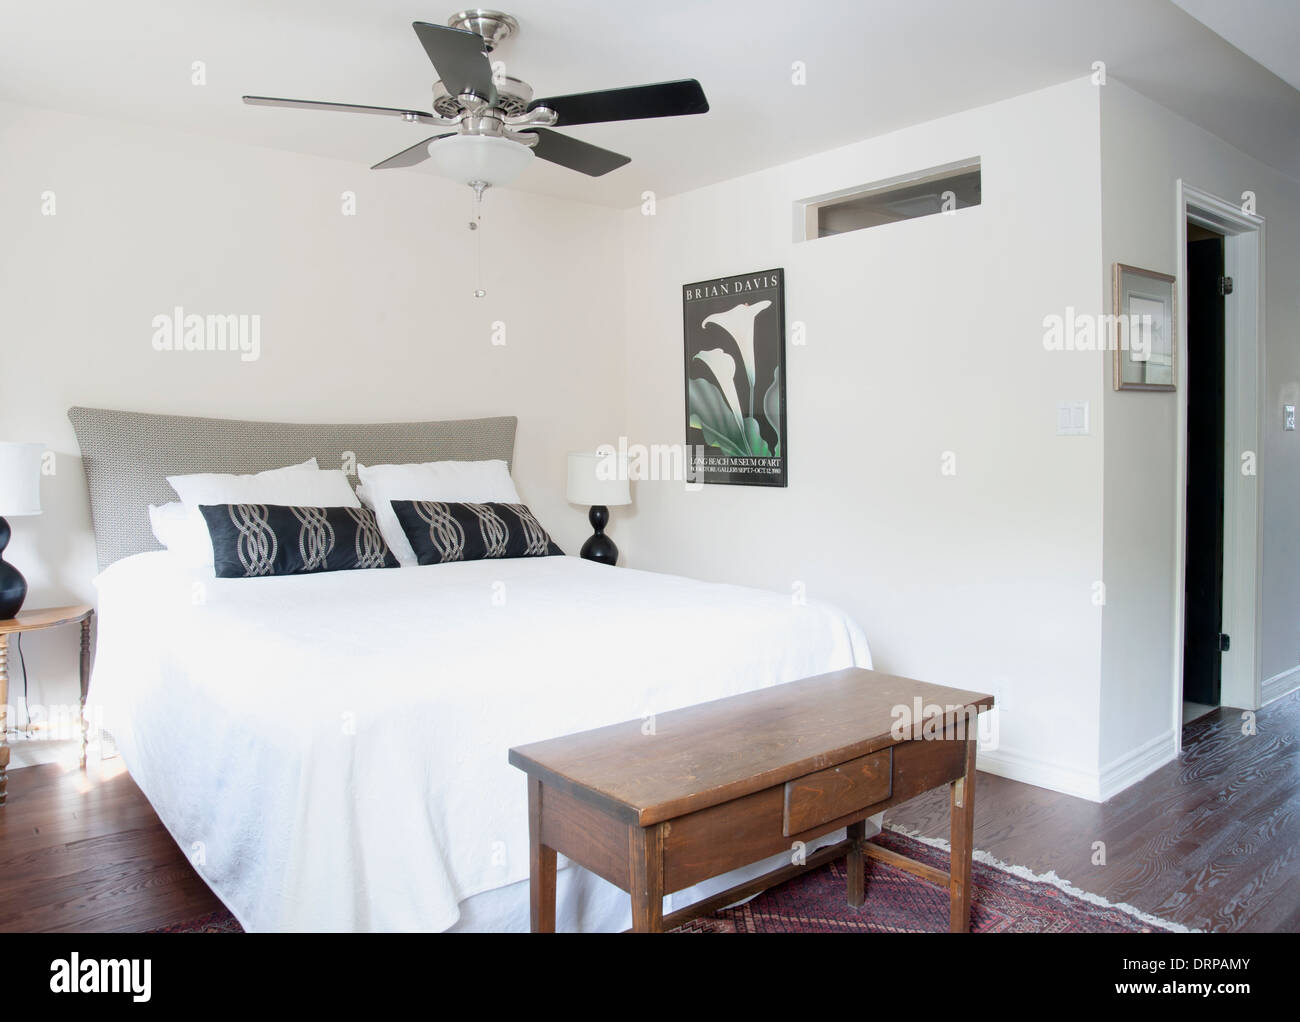 Bedroom in modern apartment flat with open concept - Stock Image